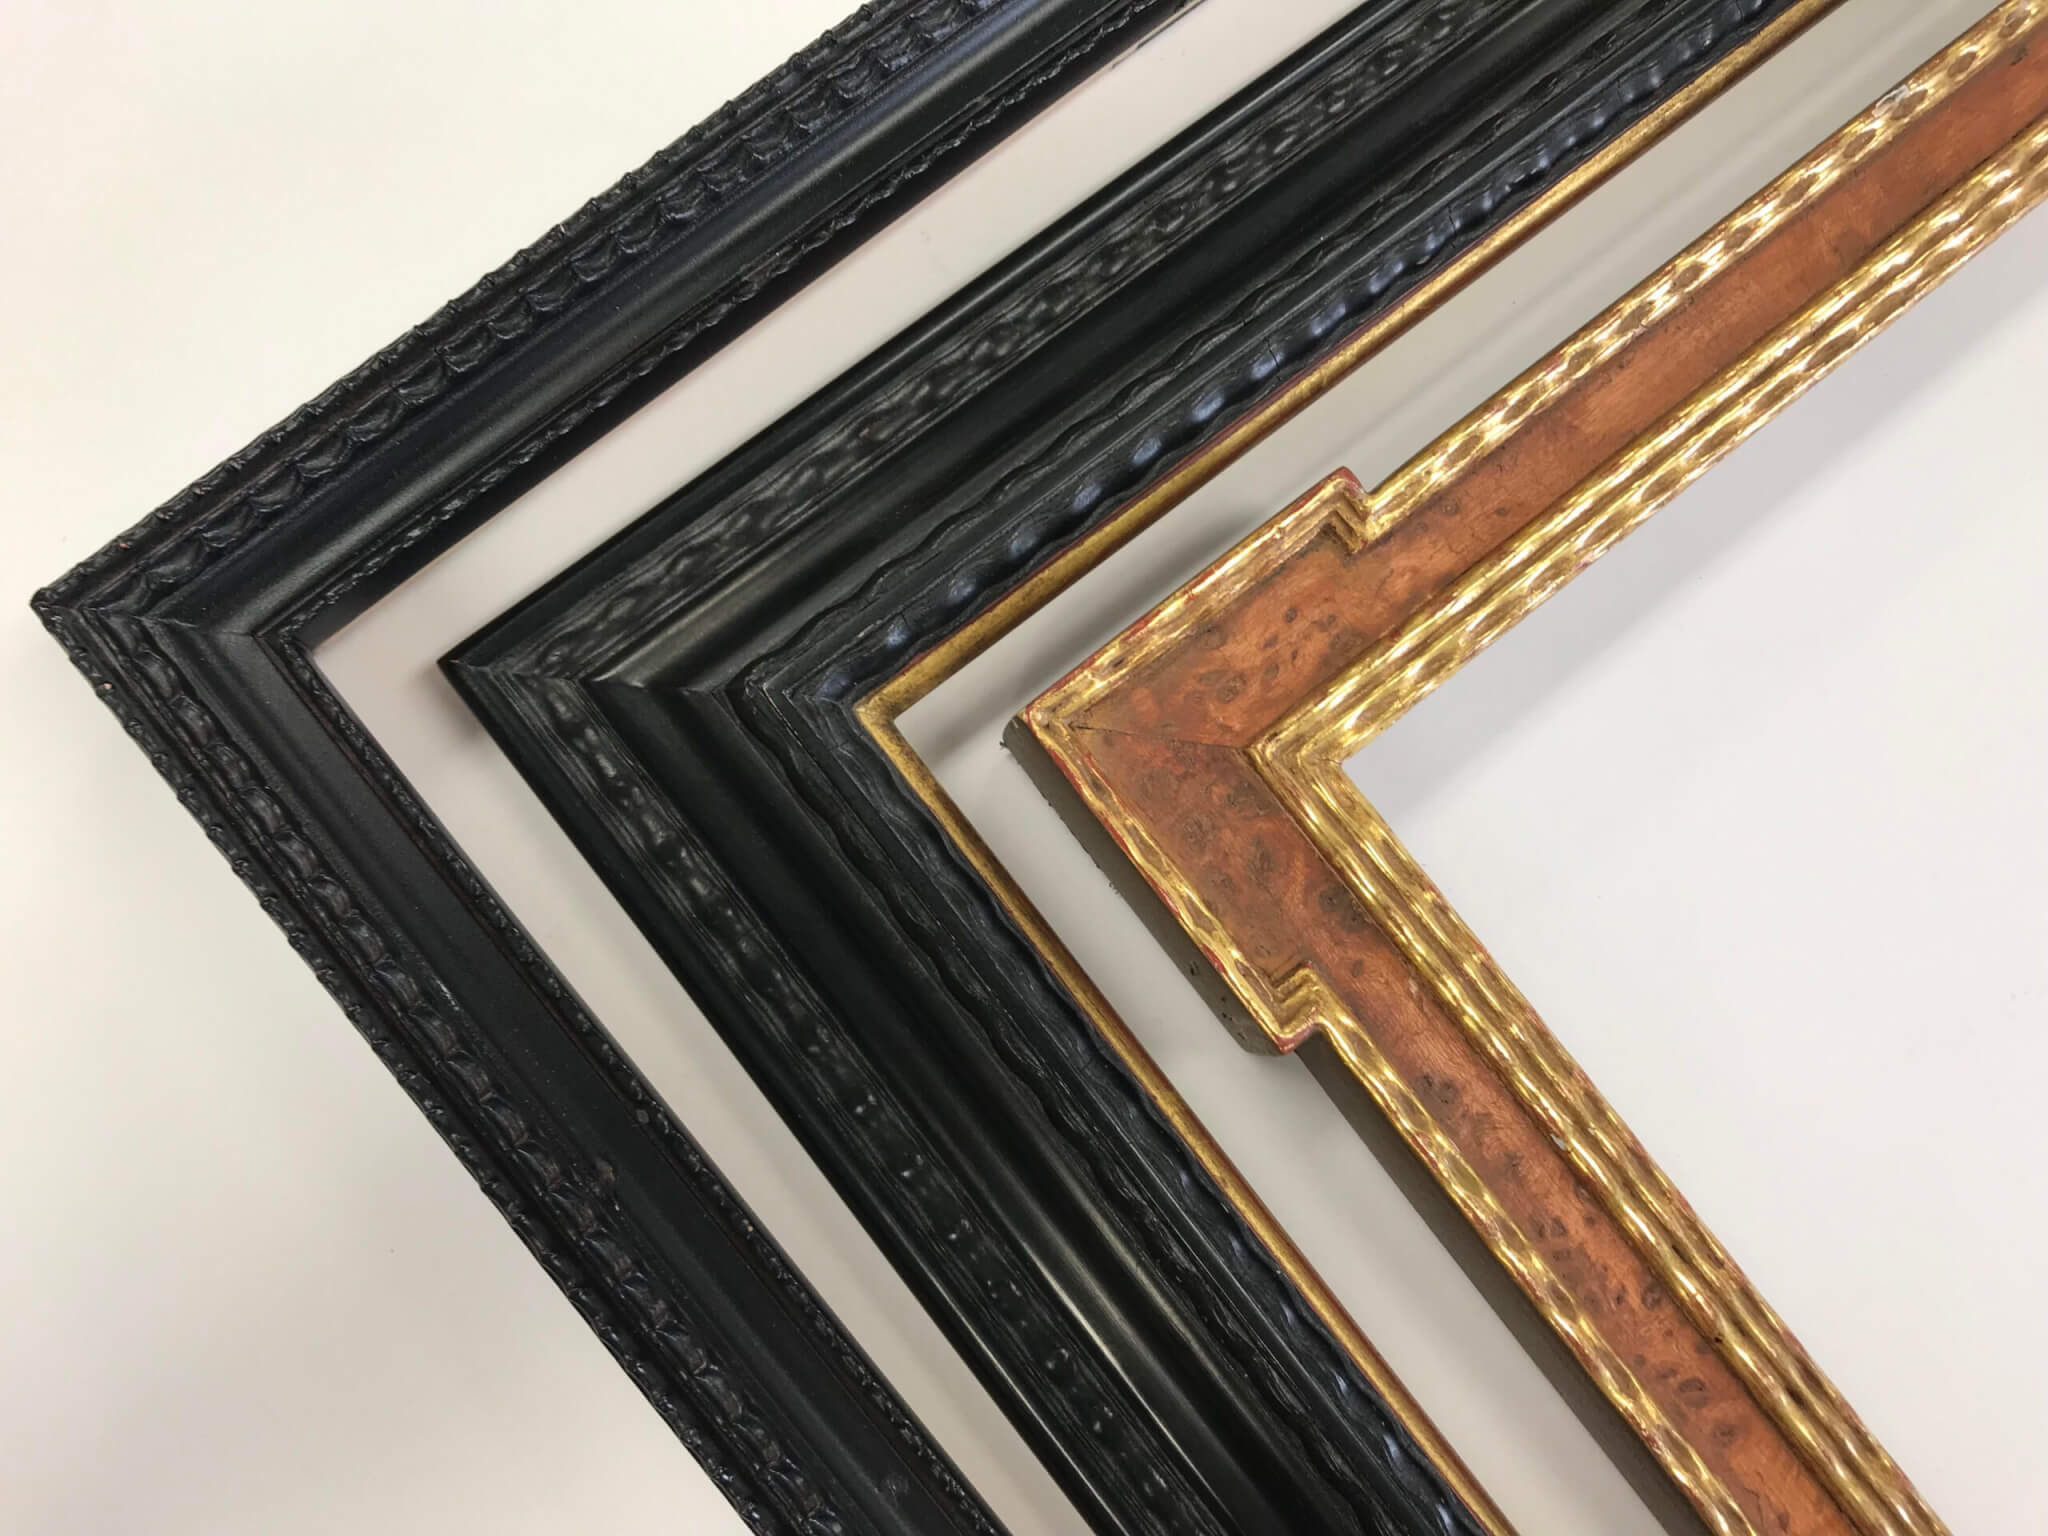 Narrow Dutch Frames. Dutch frames Ebonized Wood frames Antique black dutch frames Gilded dutch frames Veneered wood frames Custom wood frames Antique finish frames Burled wood frames Custom Burled wood frames 22k gold leaf picture frames Chicago gilded frames Chicago gold leaf frames Custom Lacquer frames Chicago Portrait frames Artifact Services Chicago